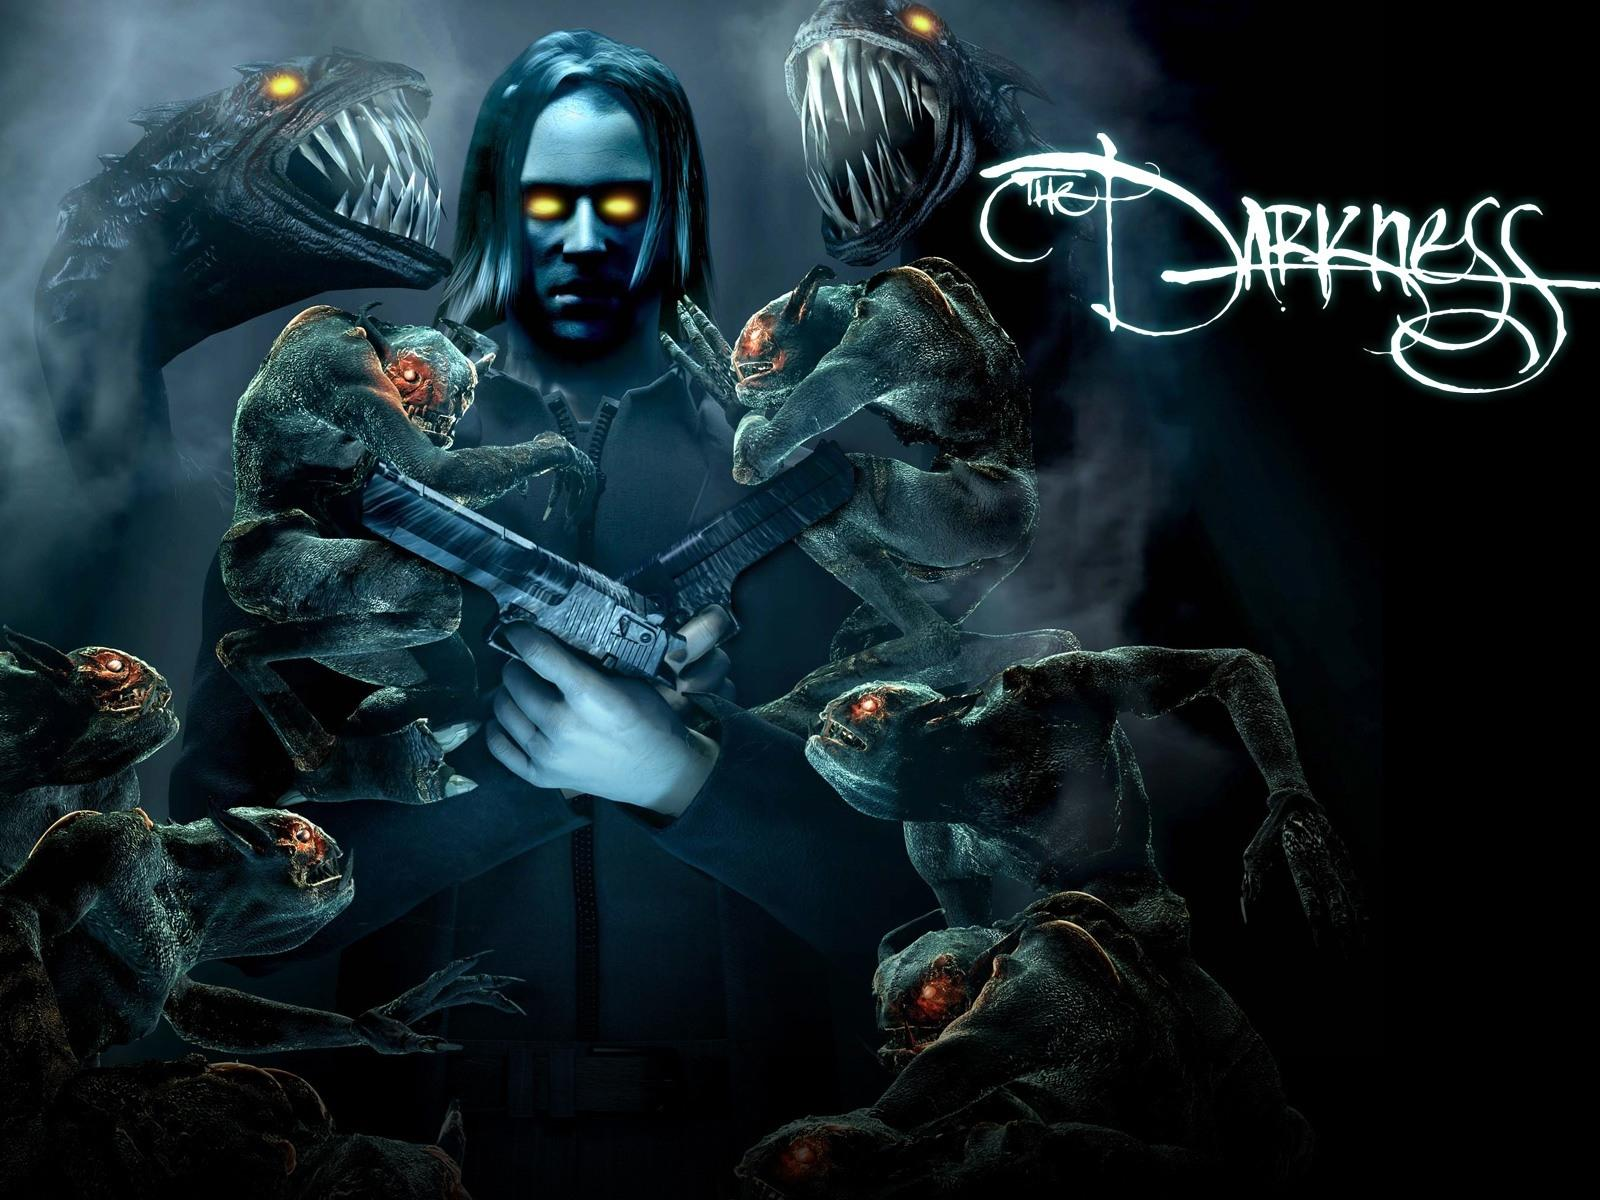 The Darkness at 640 x 960 iPhone 4 size wallpapers HD quality